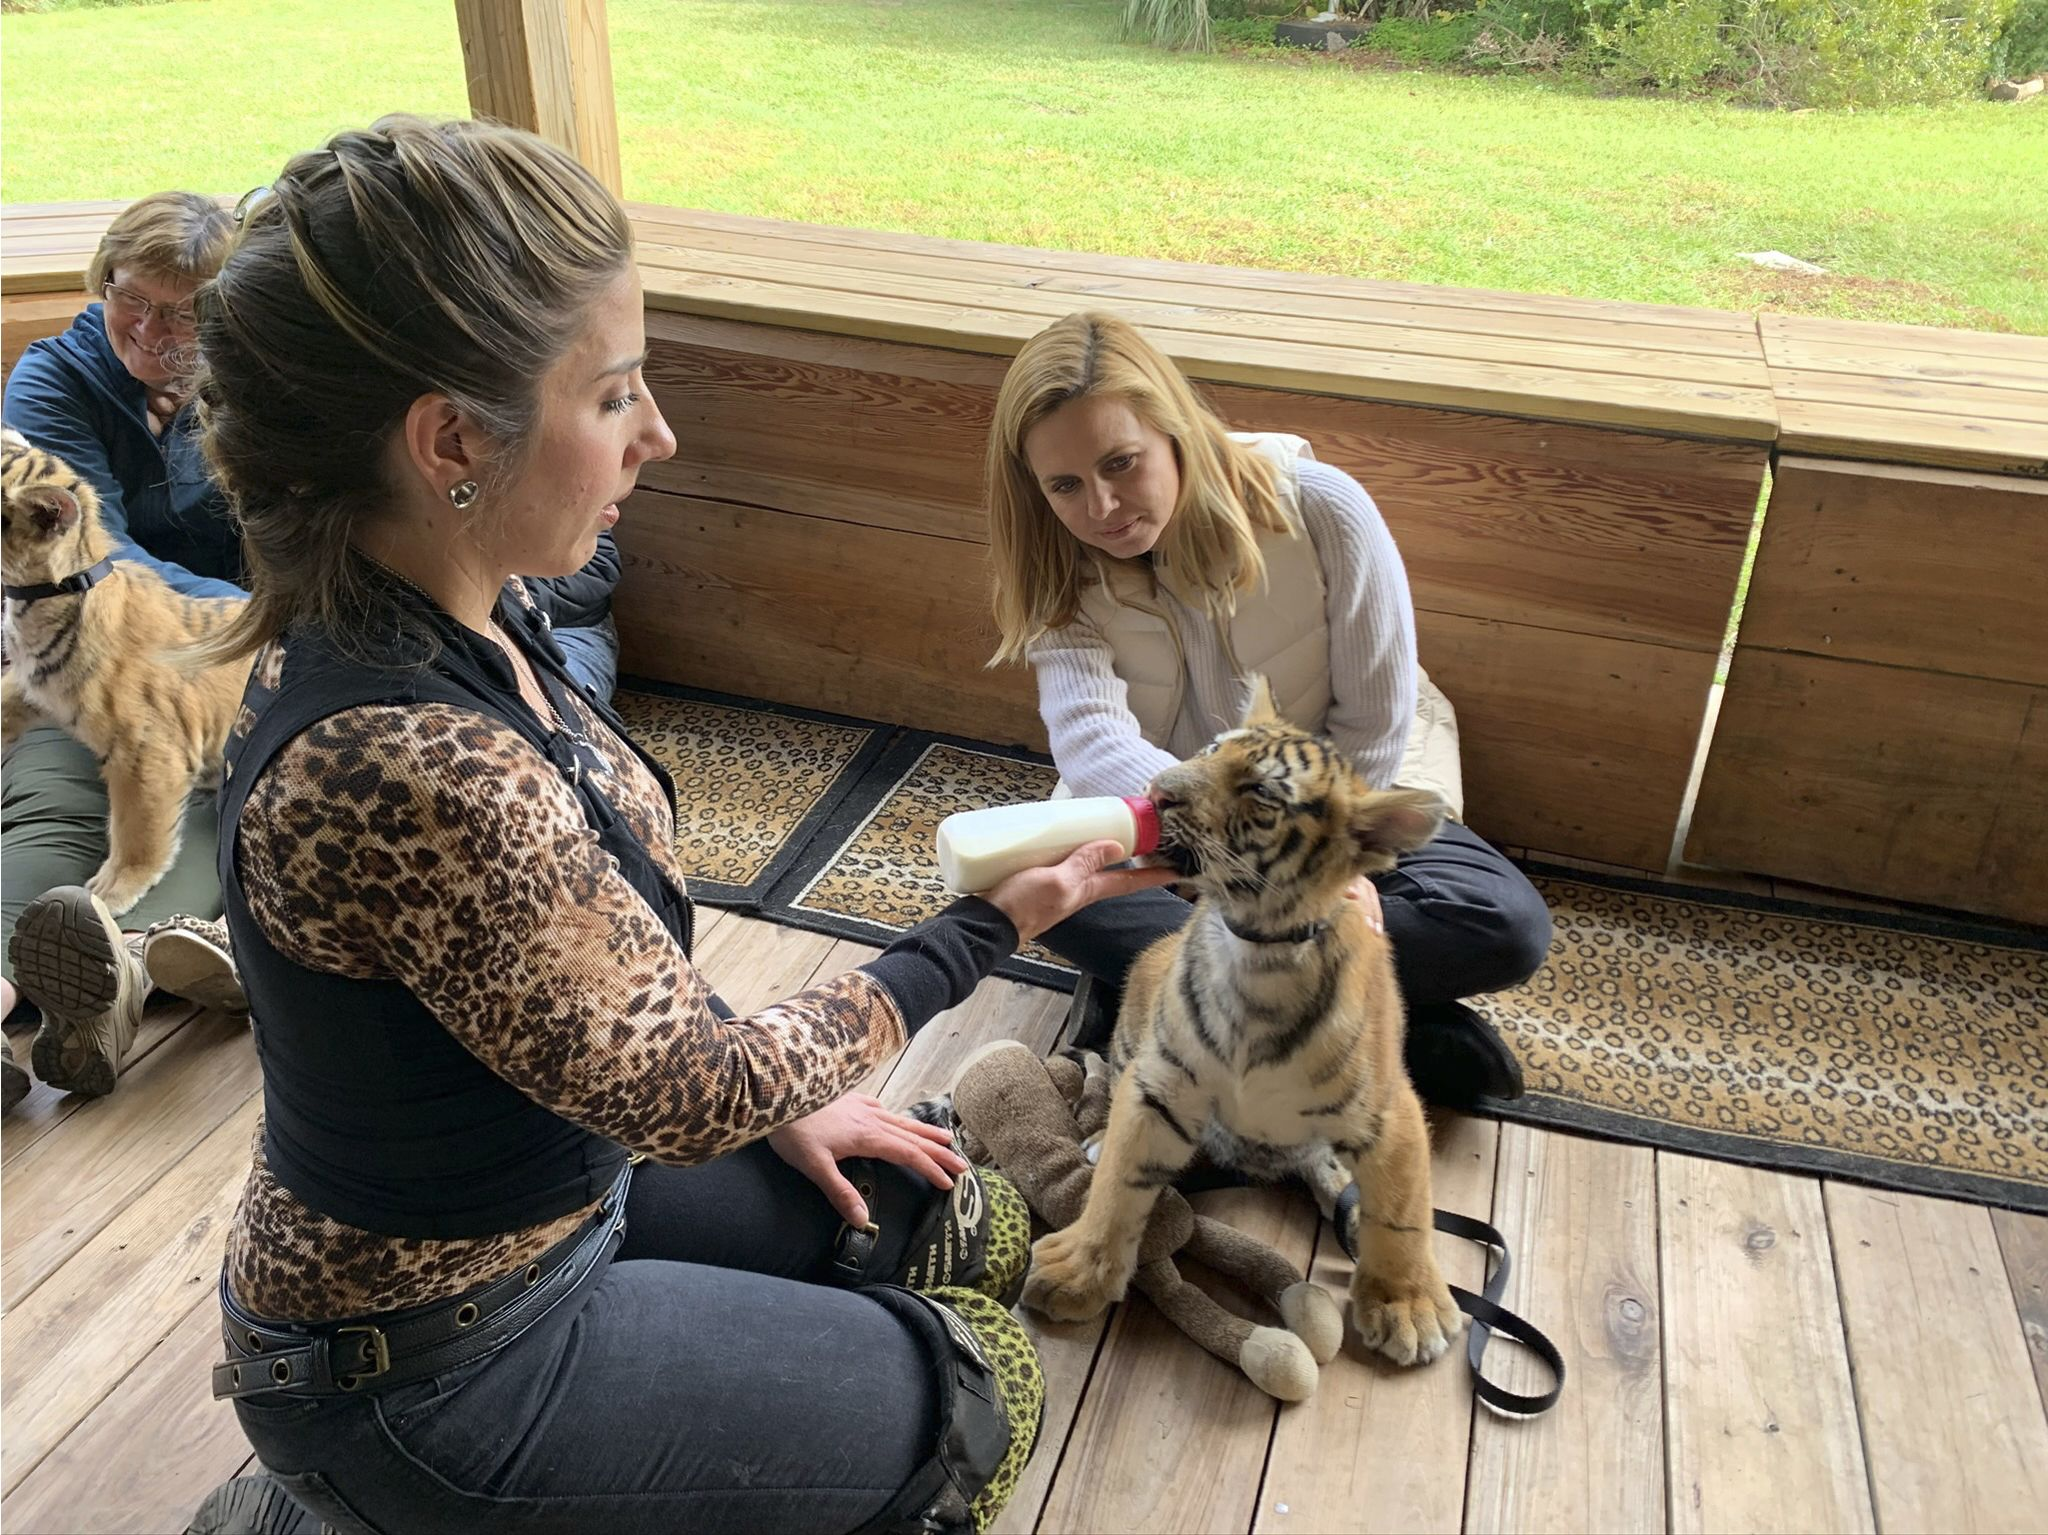 Mariana van Zeller (R) interacts with a tiger cub and a Myrtle Beach Safari handler. This image... [Photo of the day - January 2021]